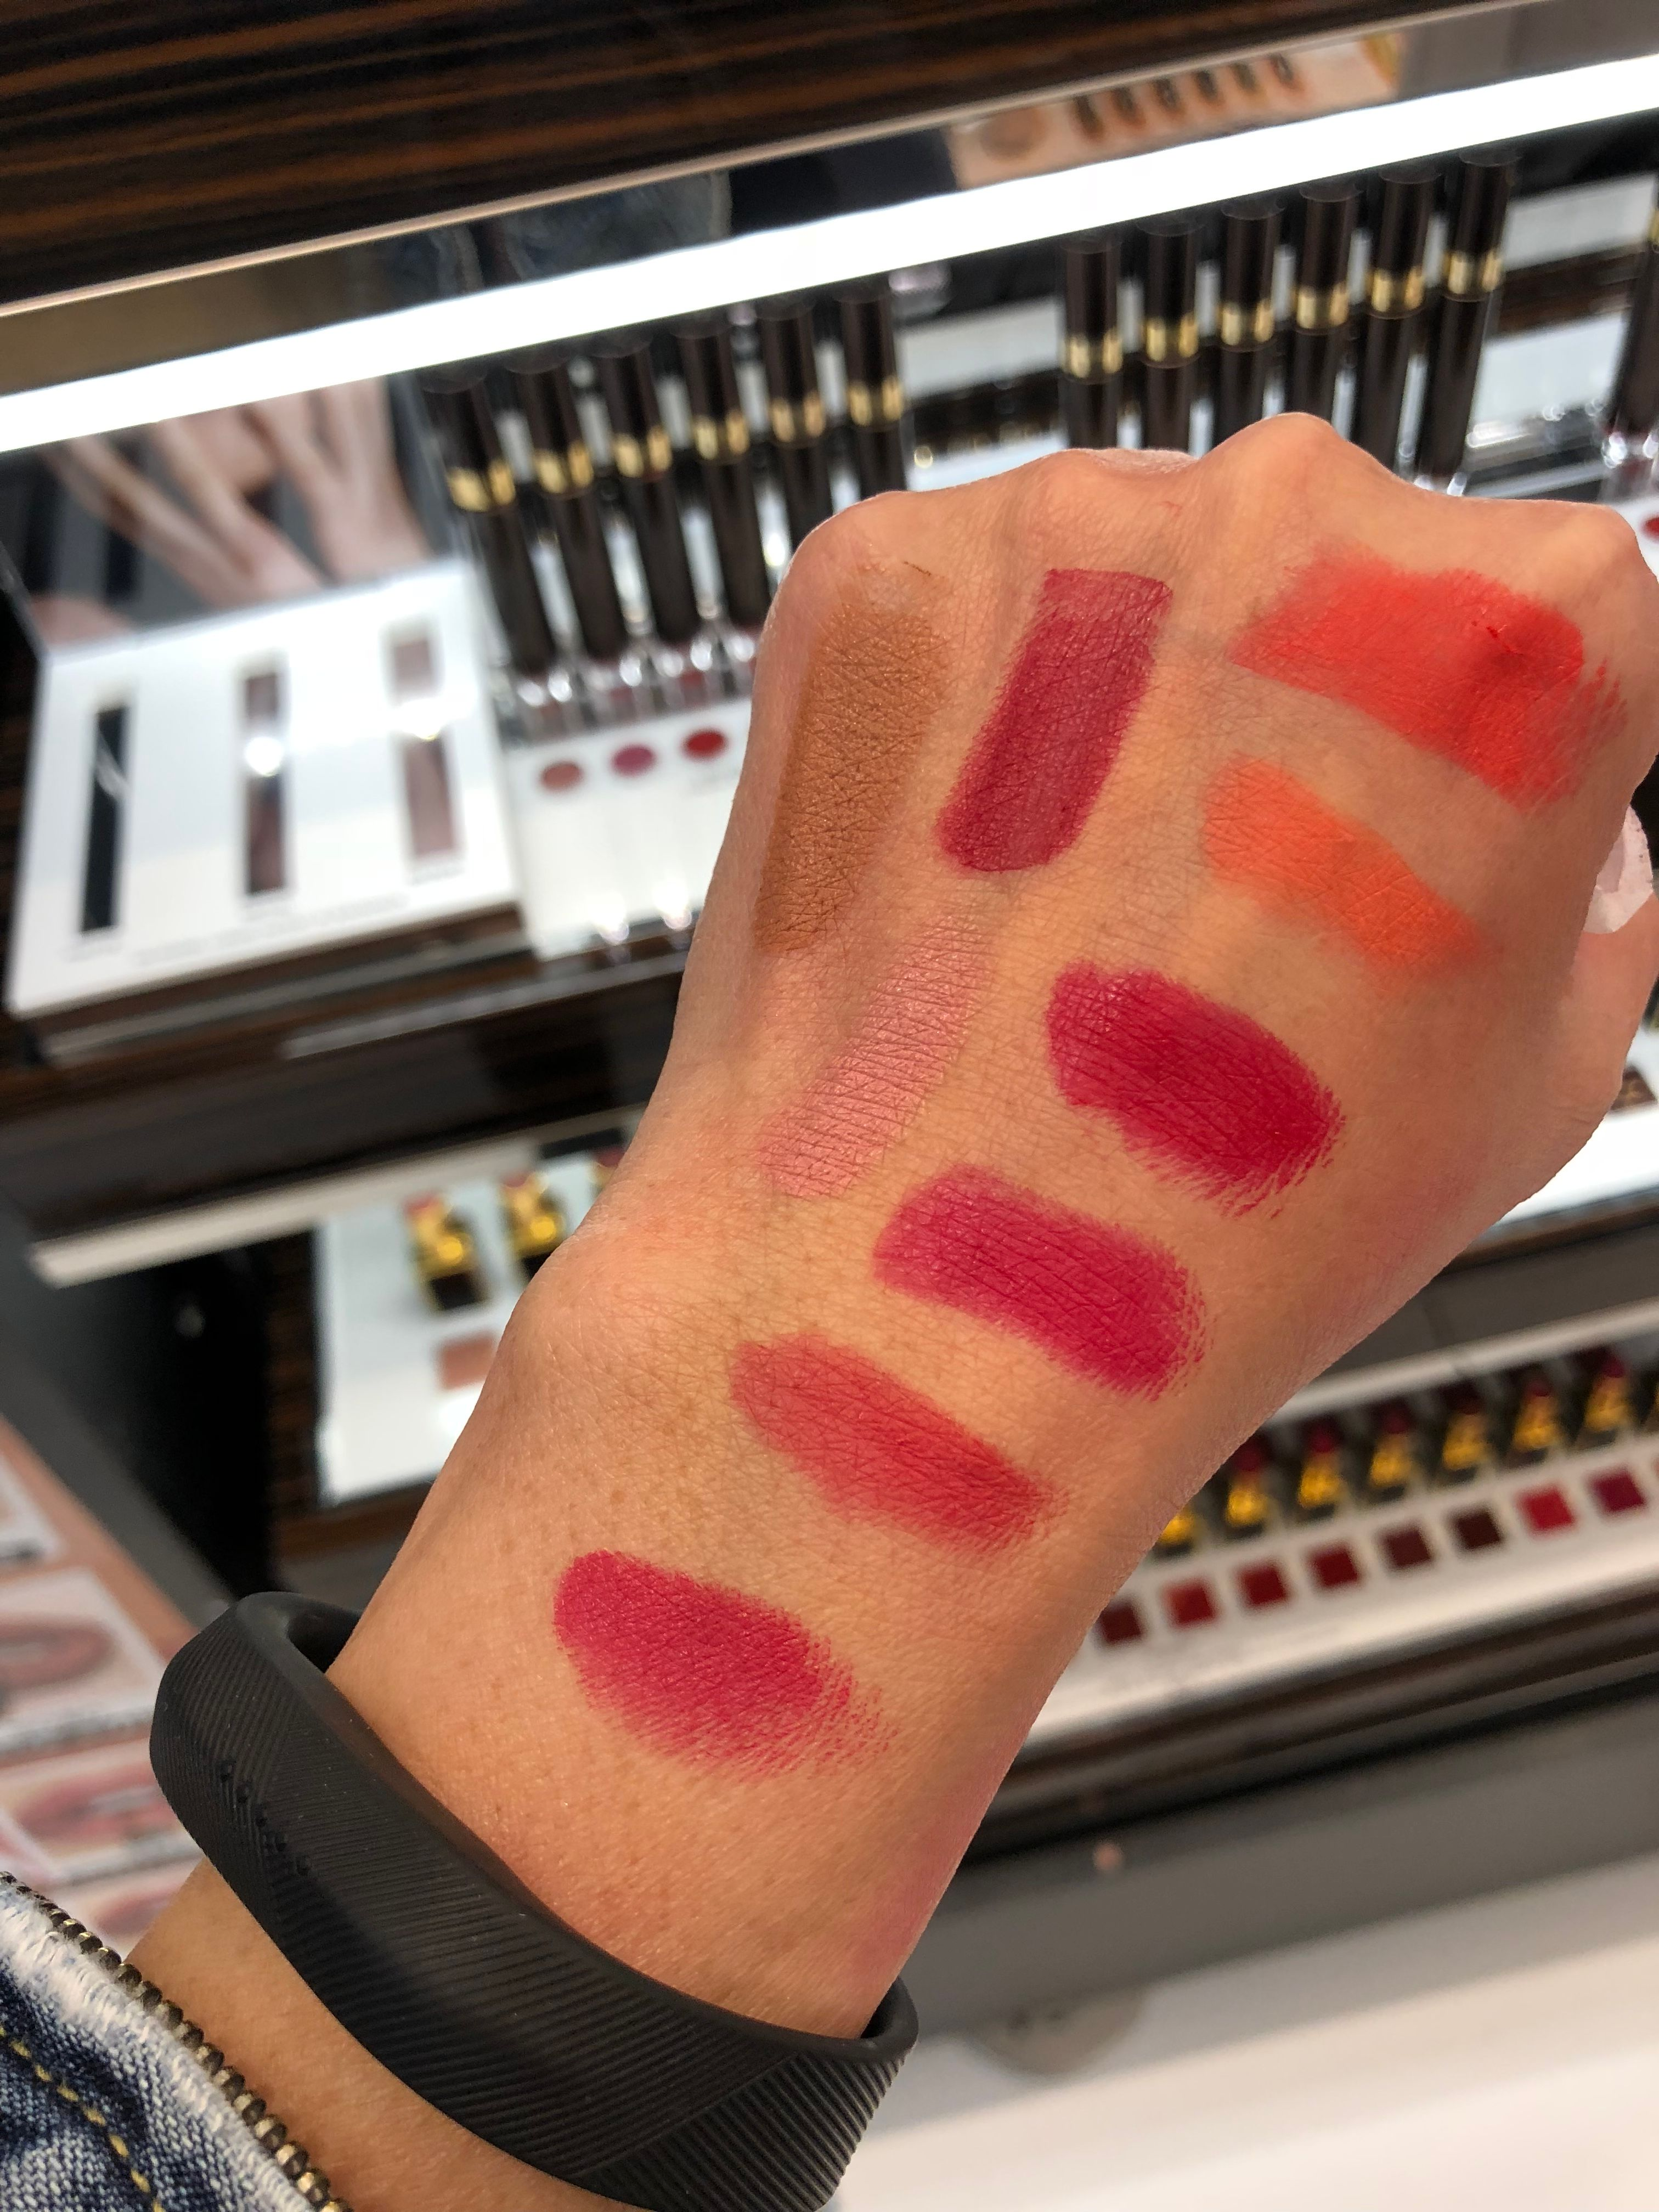 aa4aabe21f9d Re  Tom Ford Updates - Page 49 - Beauty Insider Community